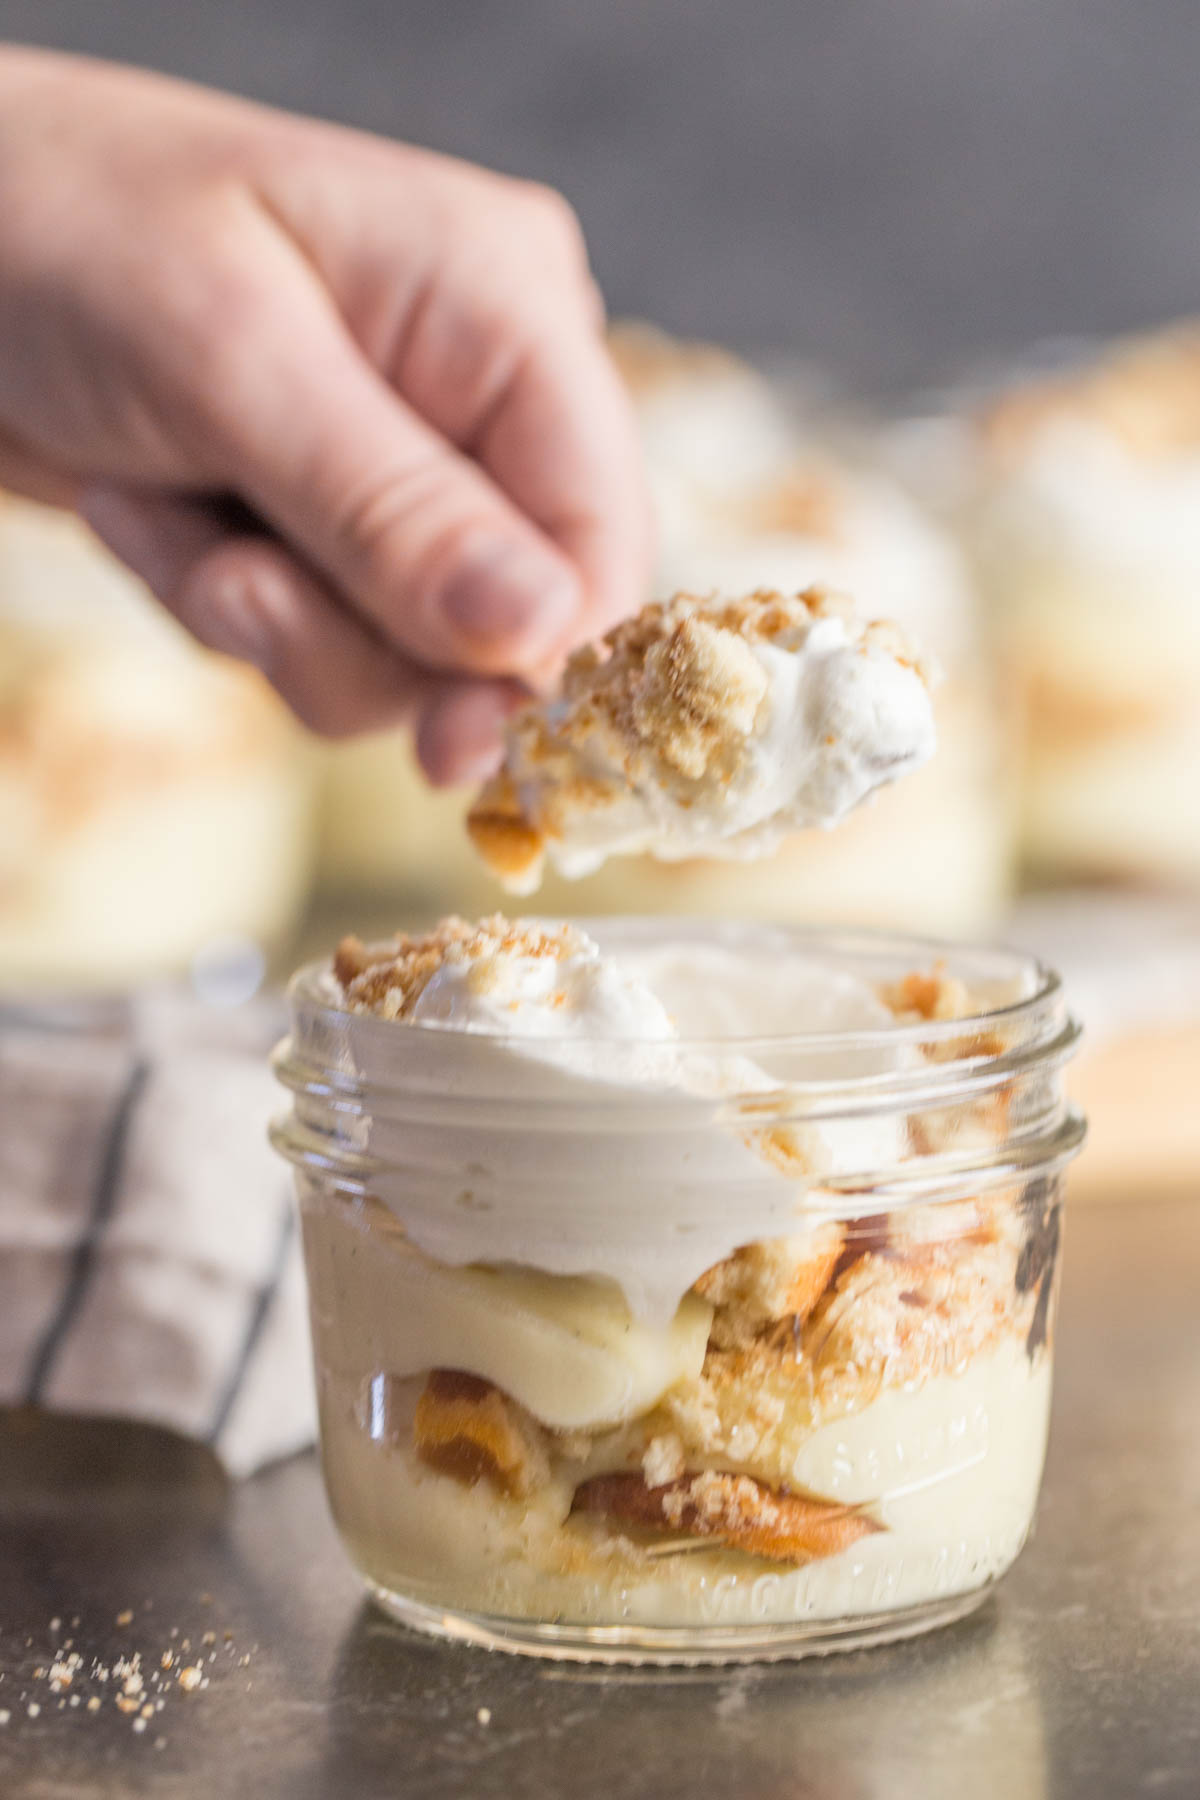 Spoonful of banana pudding above jar